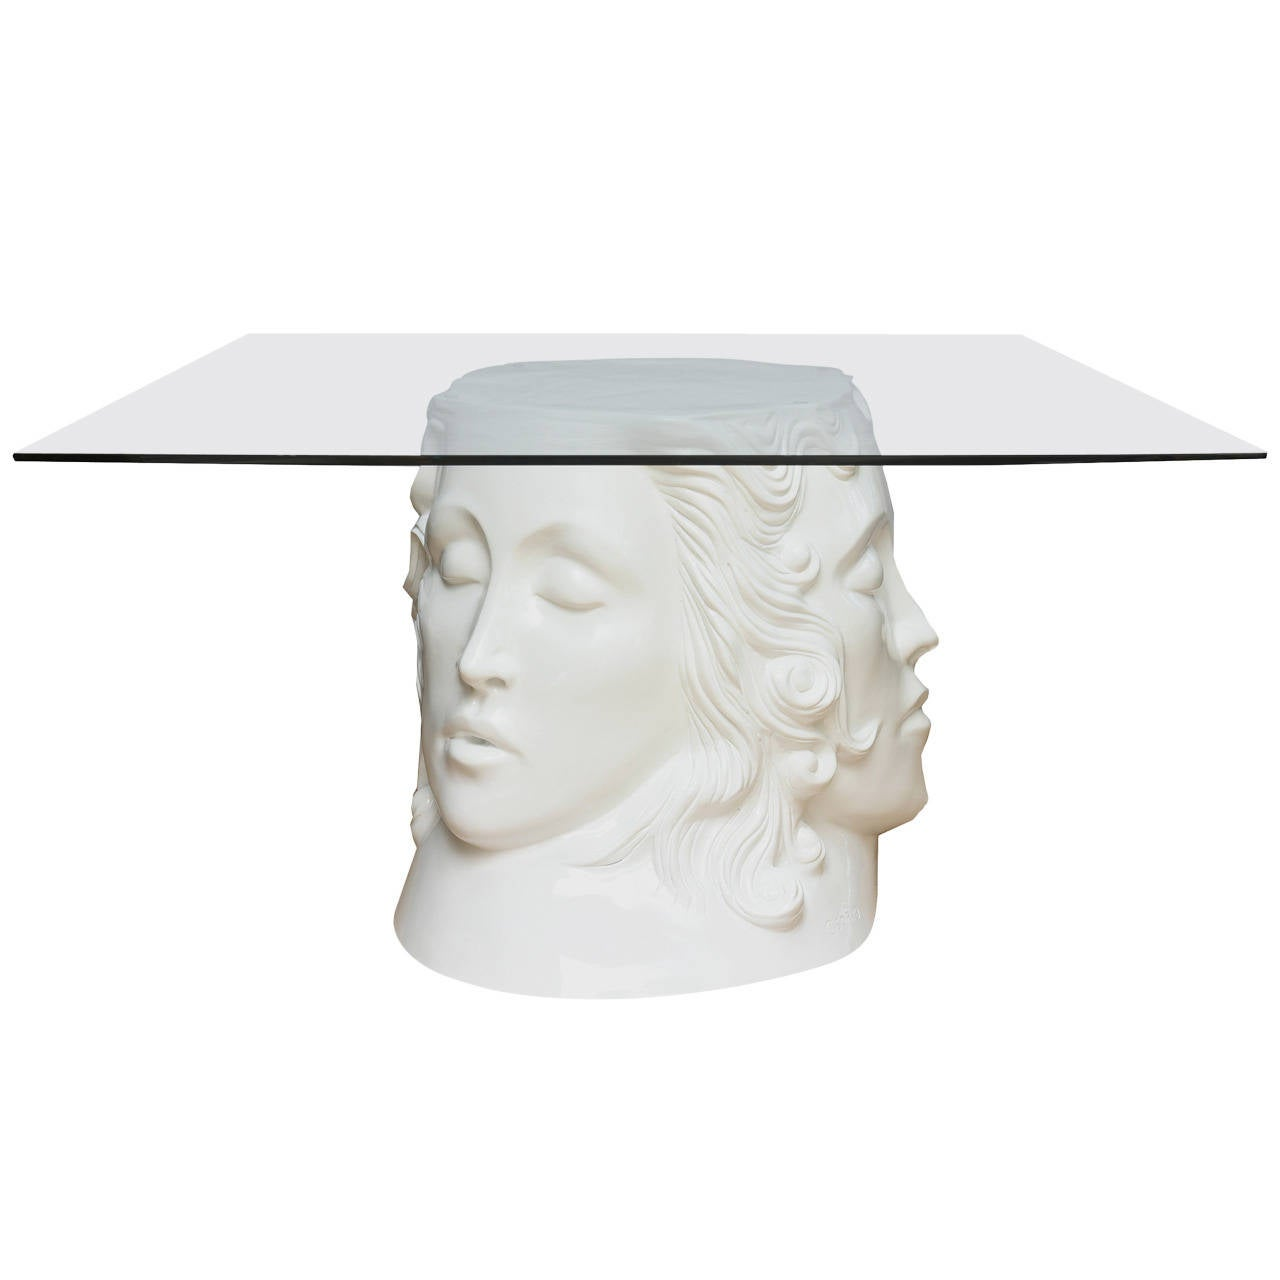 Signed White Lacquered Resin and Glass Dining Table or Desk